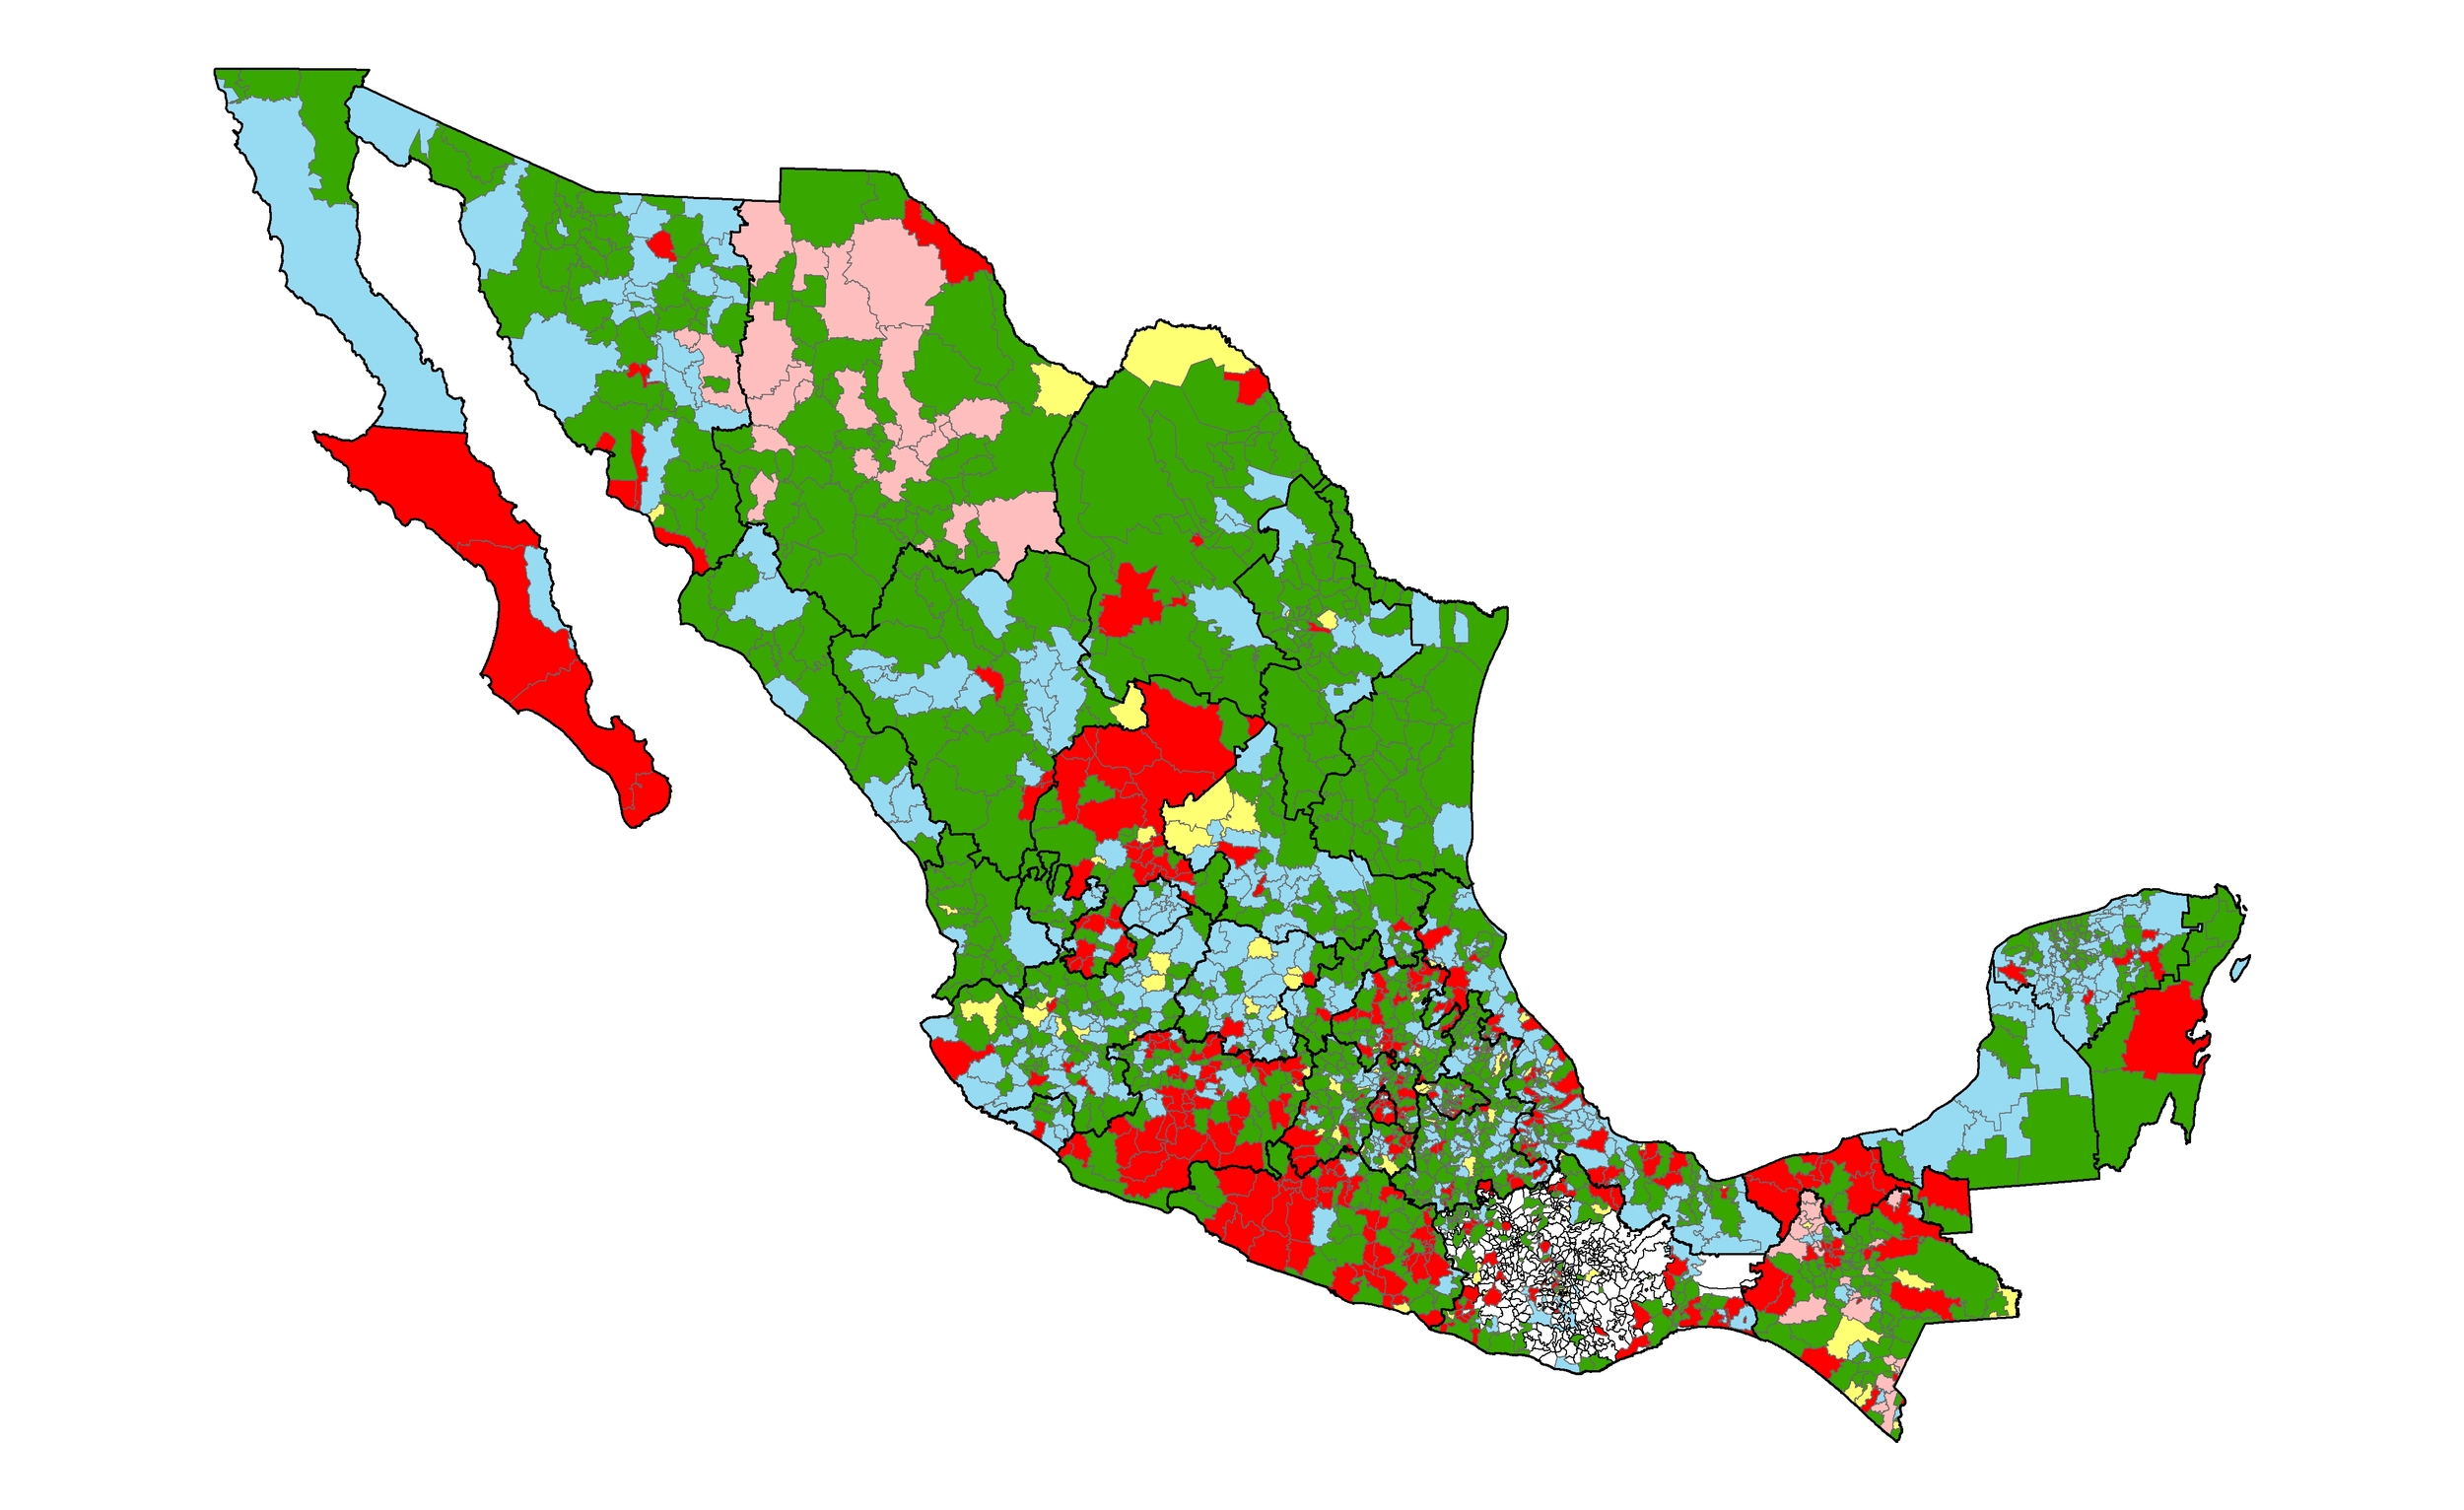 Partisanship of Mexican municipalities, 2002.